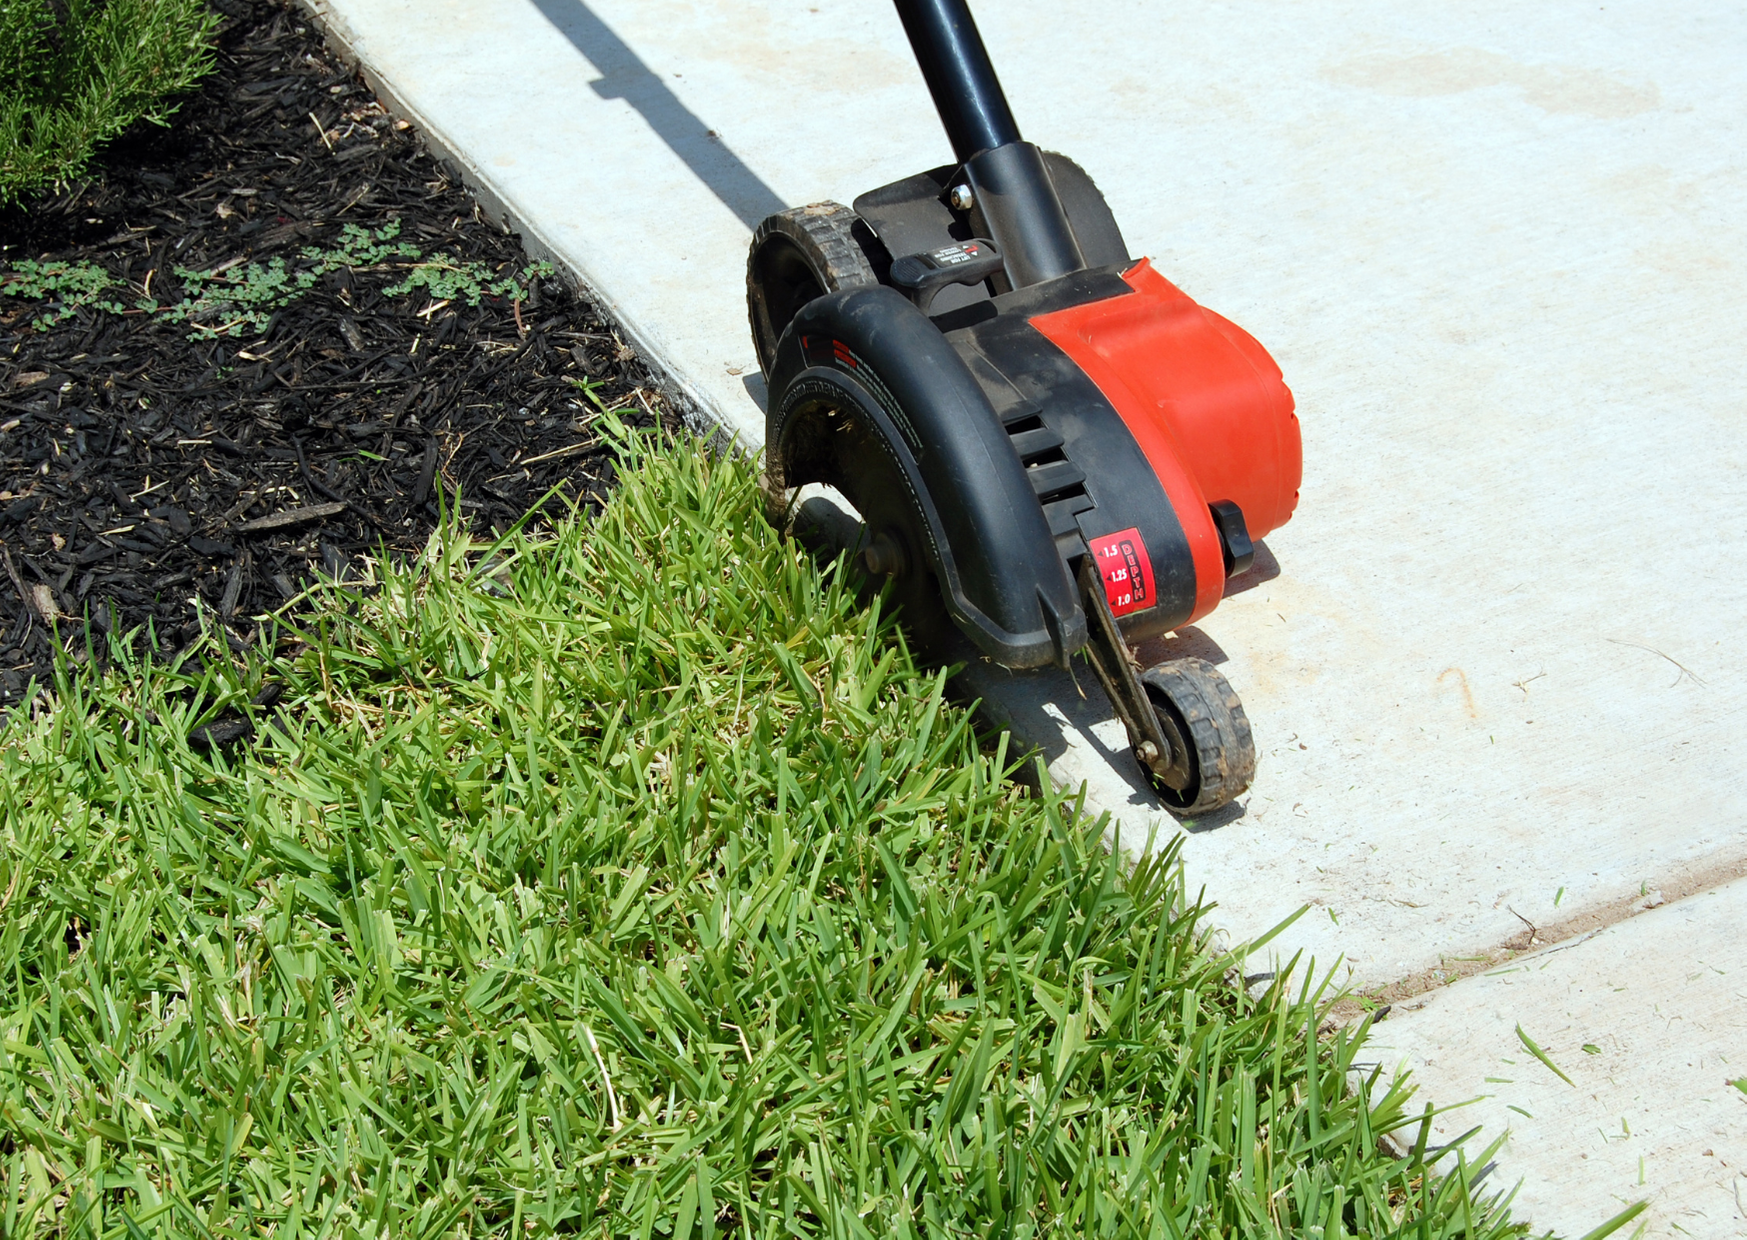 a lawn edger cutting the grass